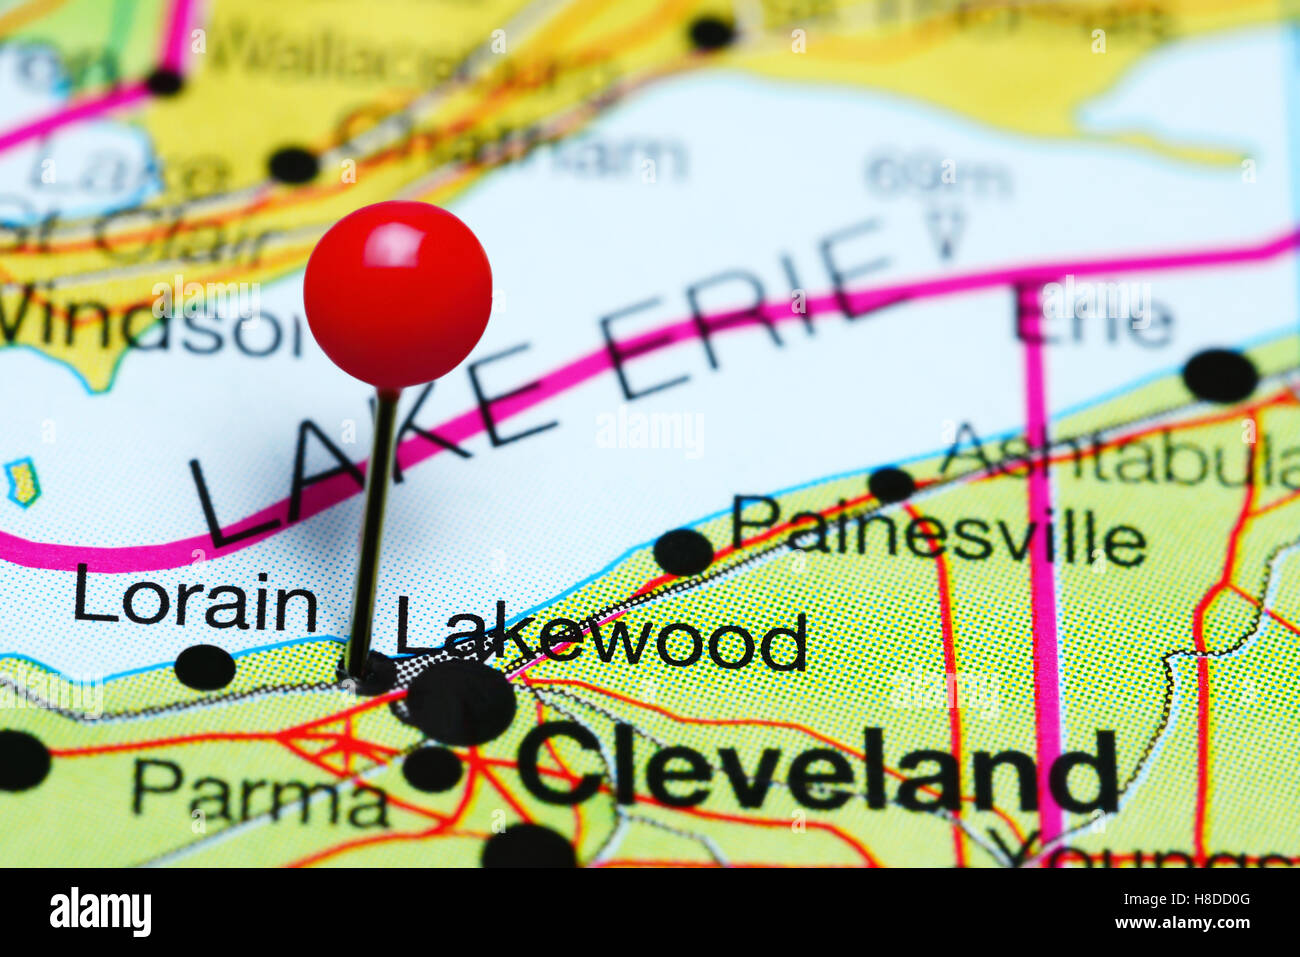 Lakewood pinned on a map of Ohio, USA - Stock Image